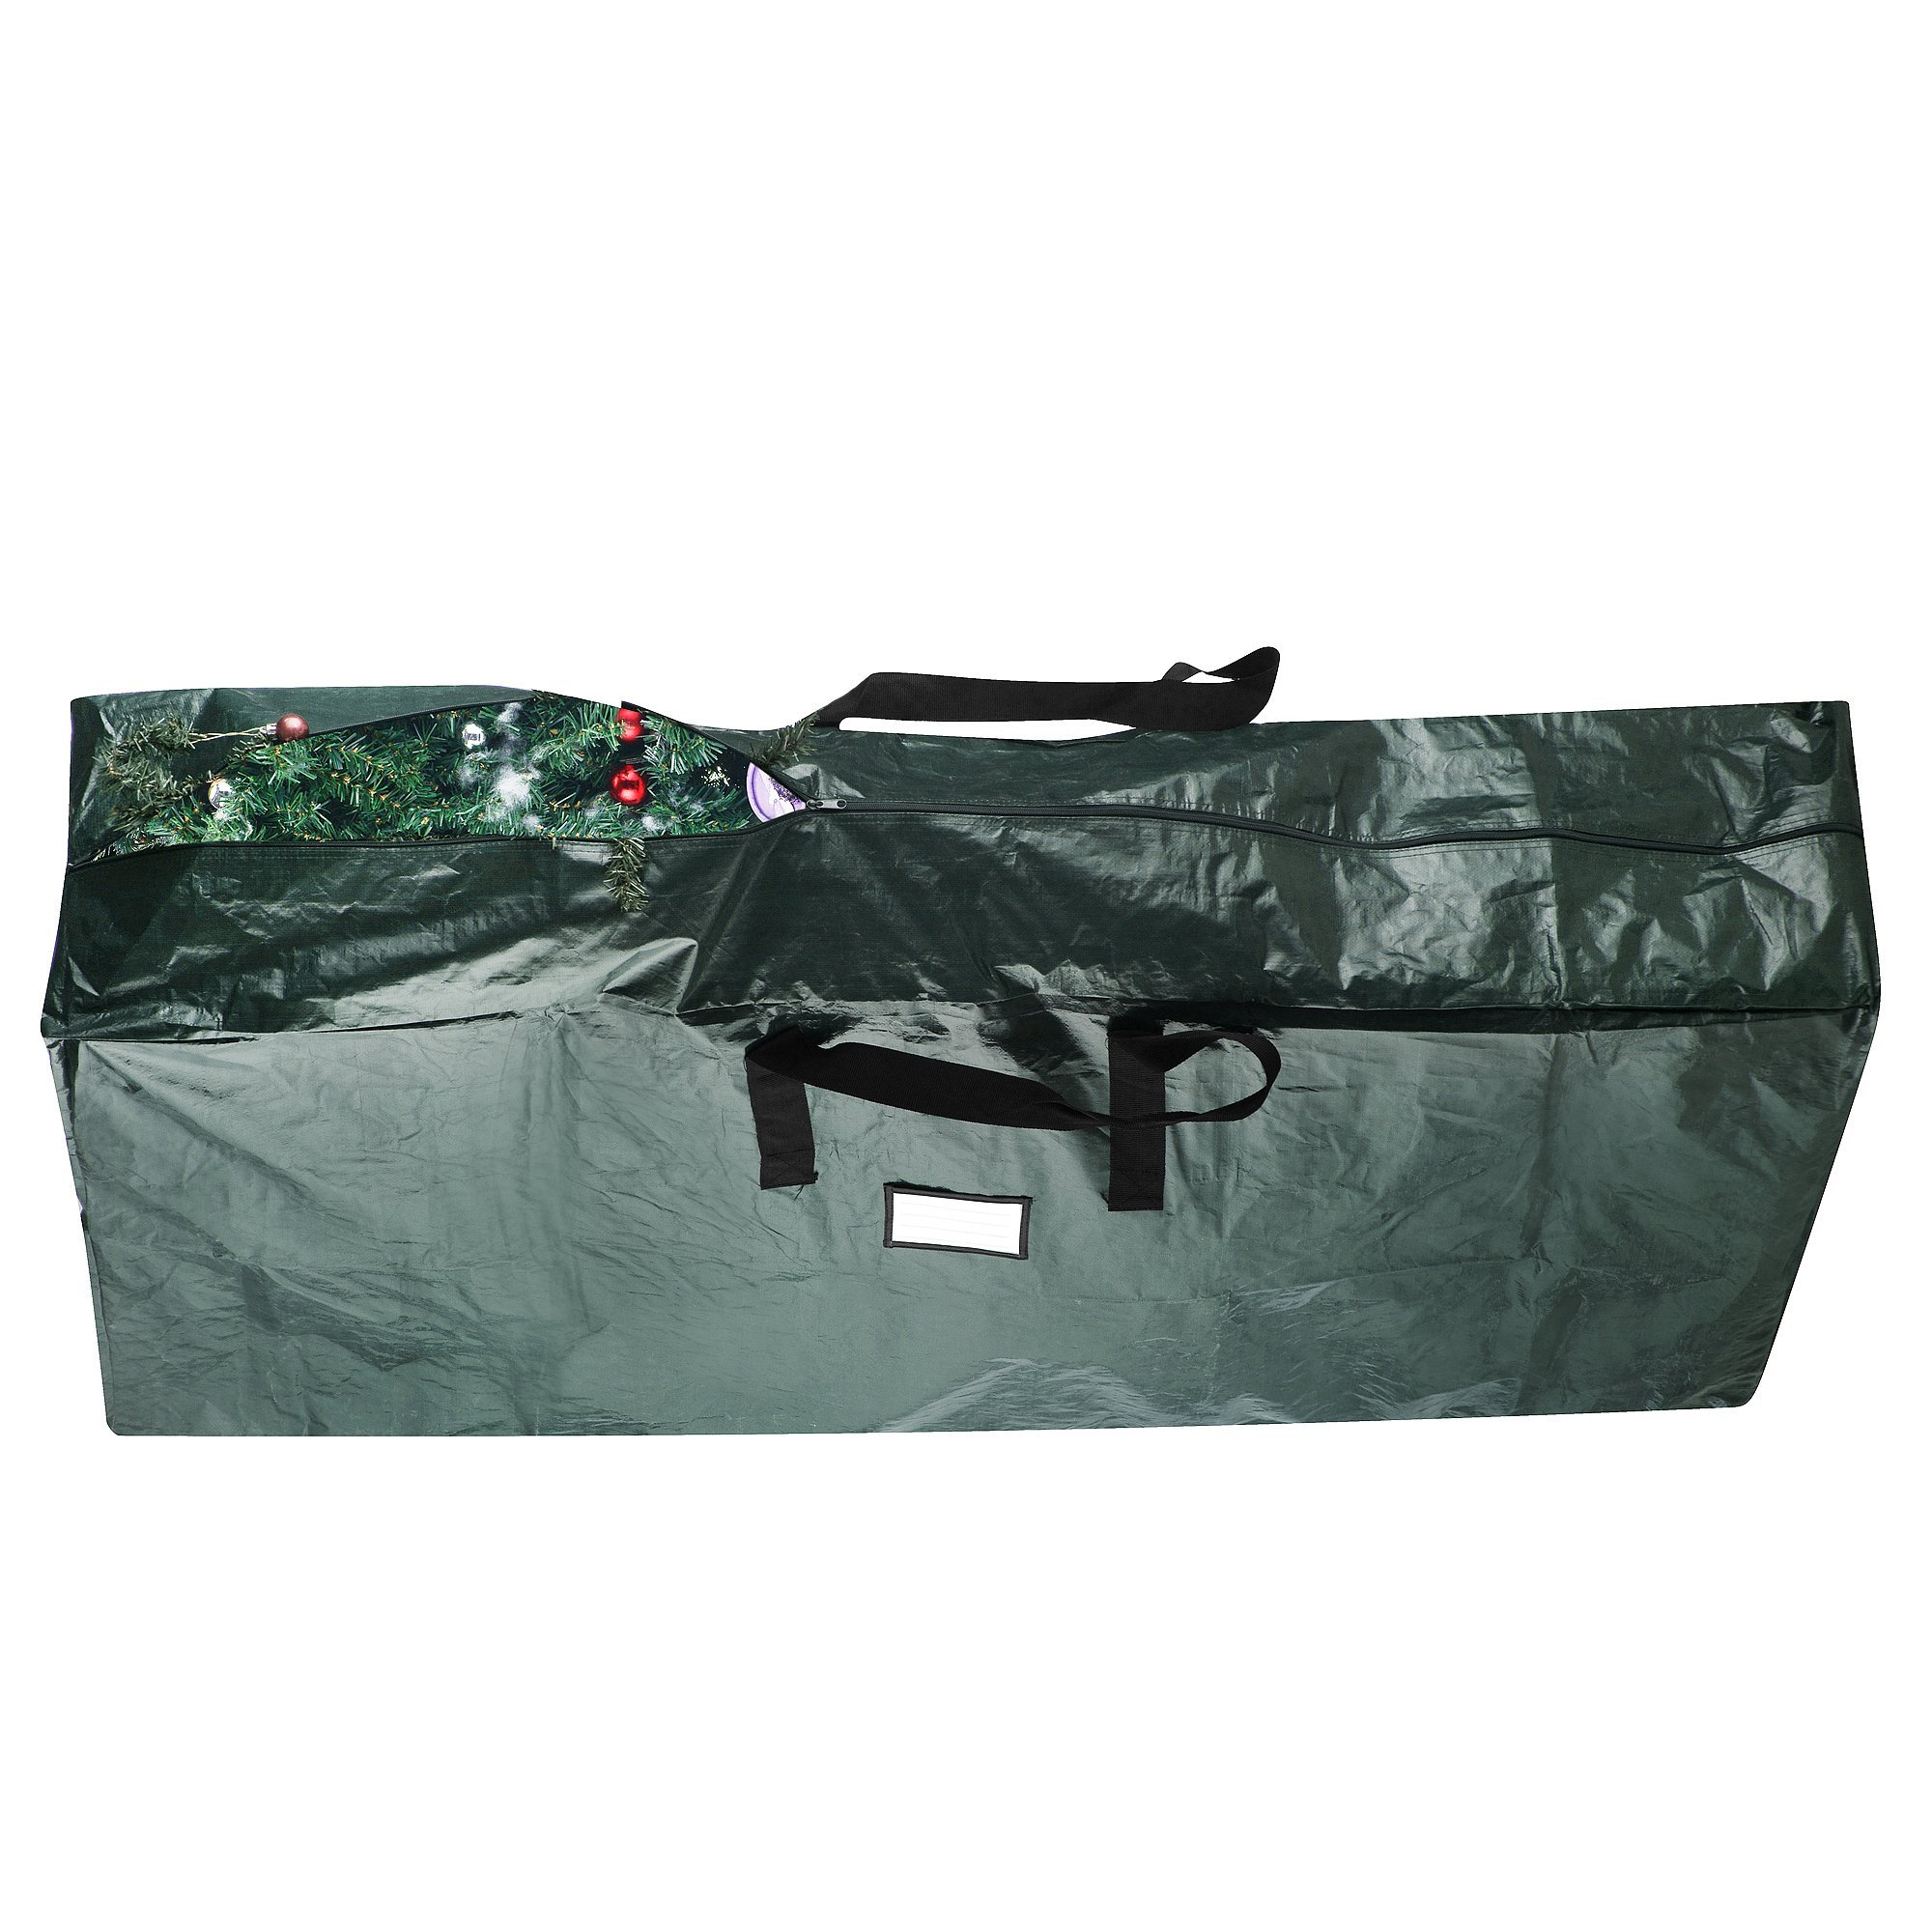 Elf Stor Premium Green Christmas Tree Bag Holiday Extra Large for up to 9' Tree Storage by Elf Stor (Image #5)